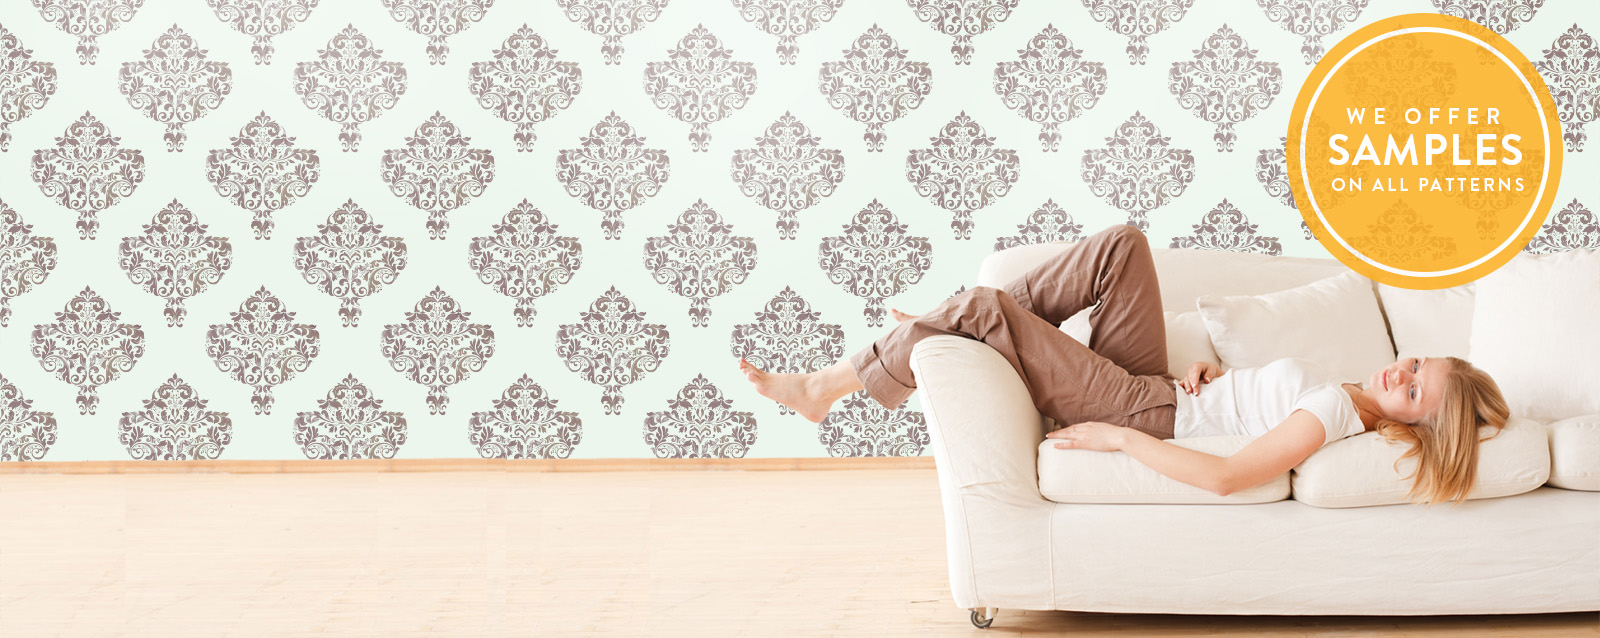 beautiful removable wallpaper swag paper is an easily removable peel 1600x638